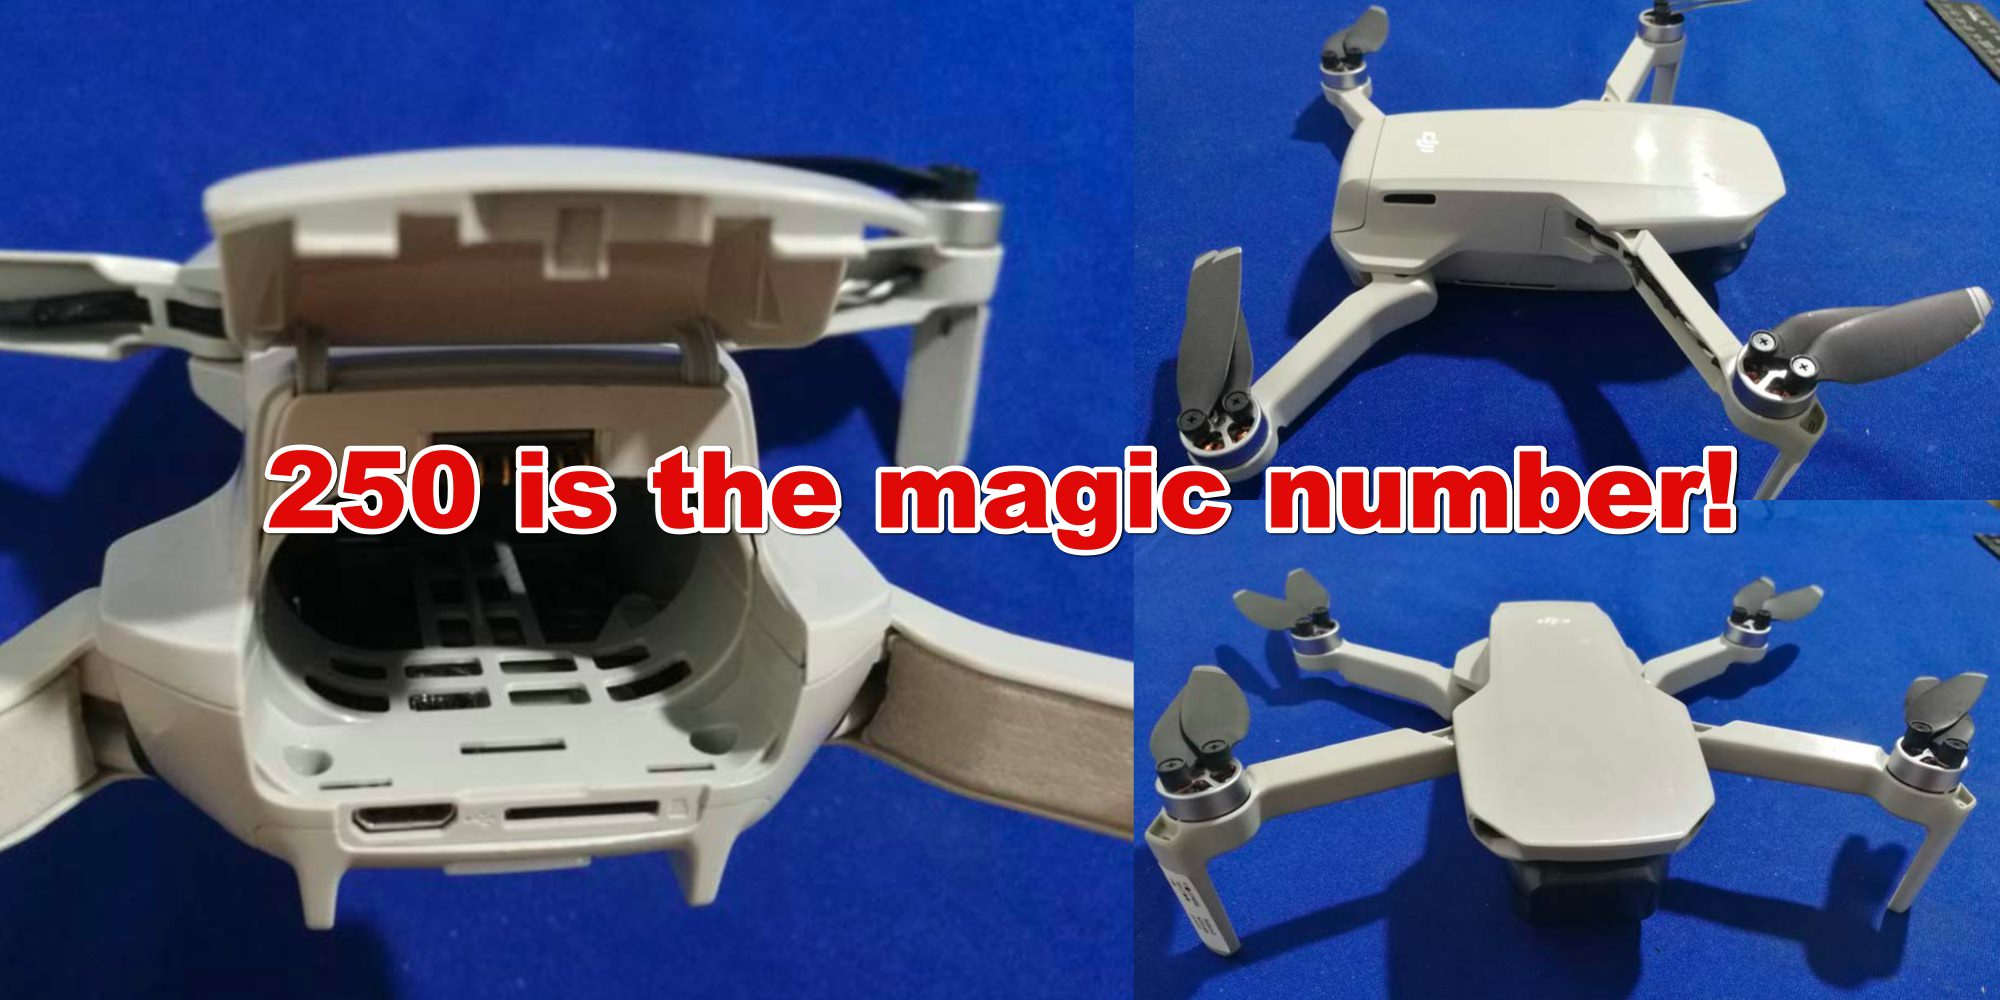 DJI Mavic Mini will dominate consumer drone market by weighing less than 250g